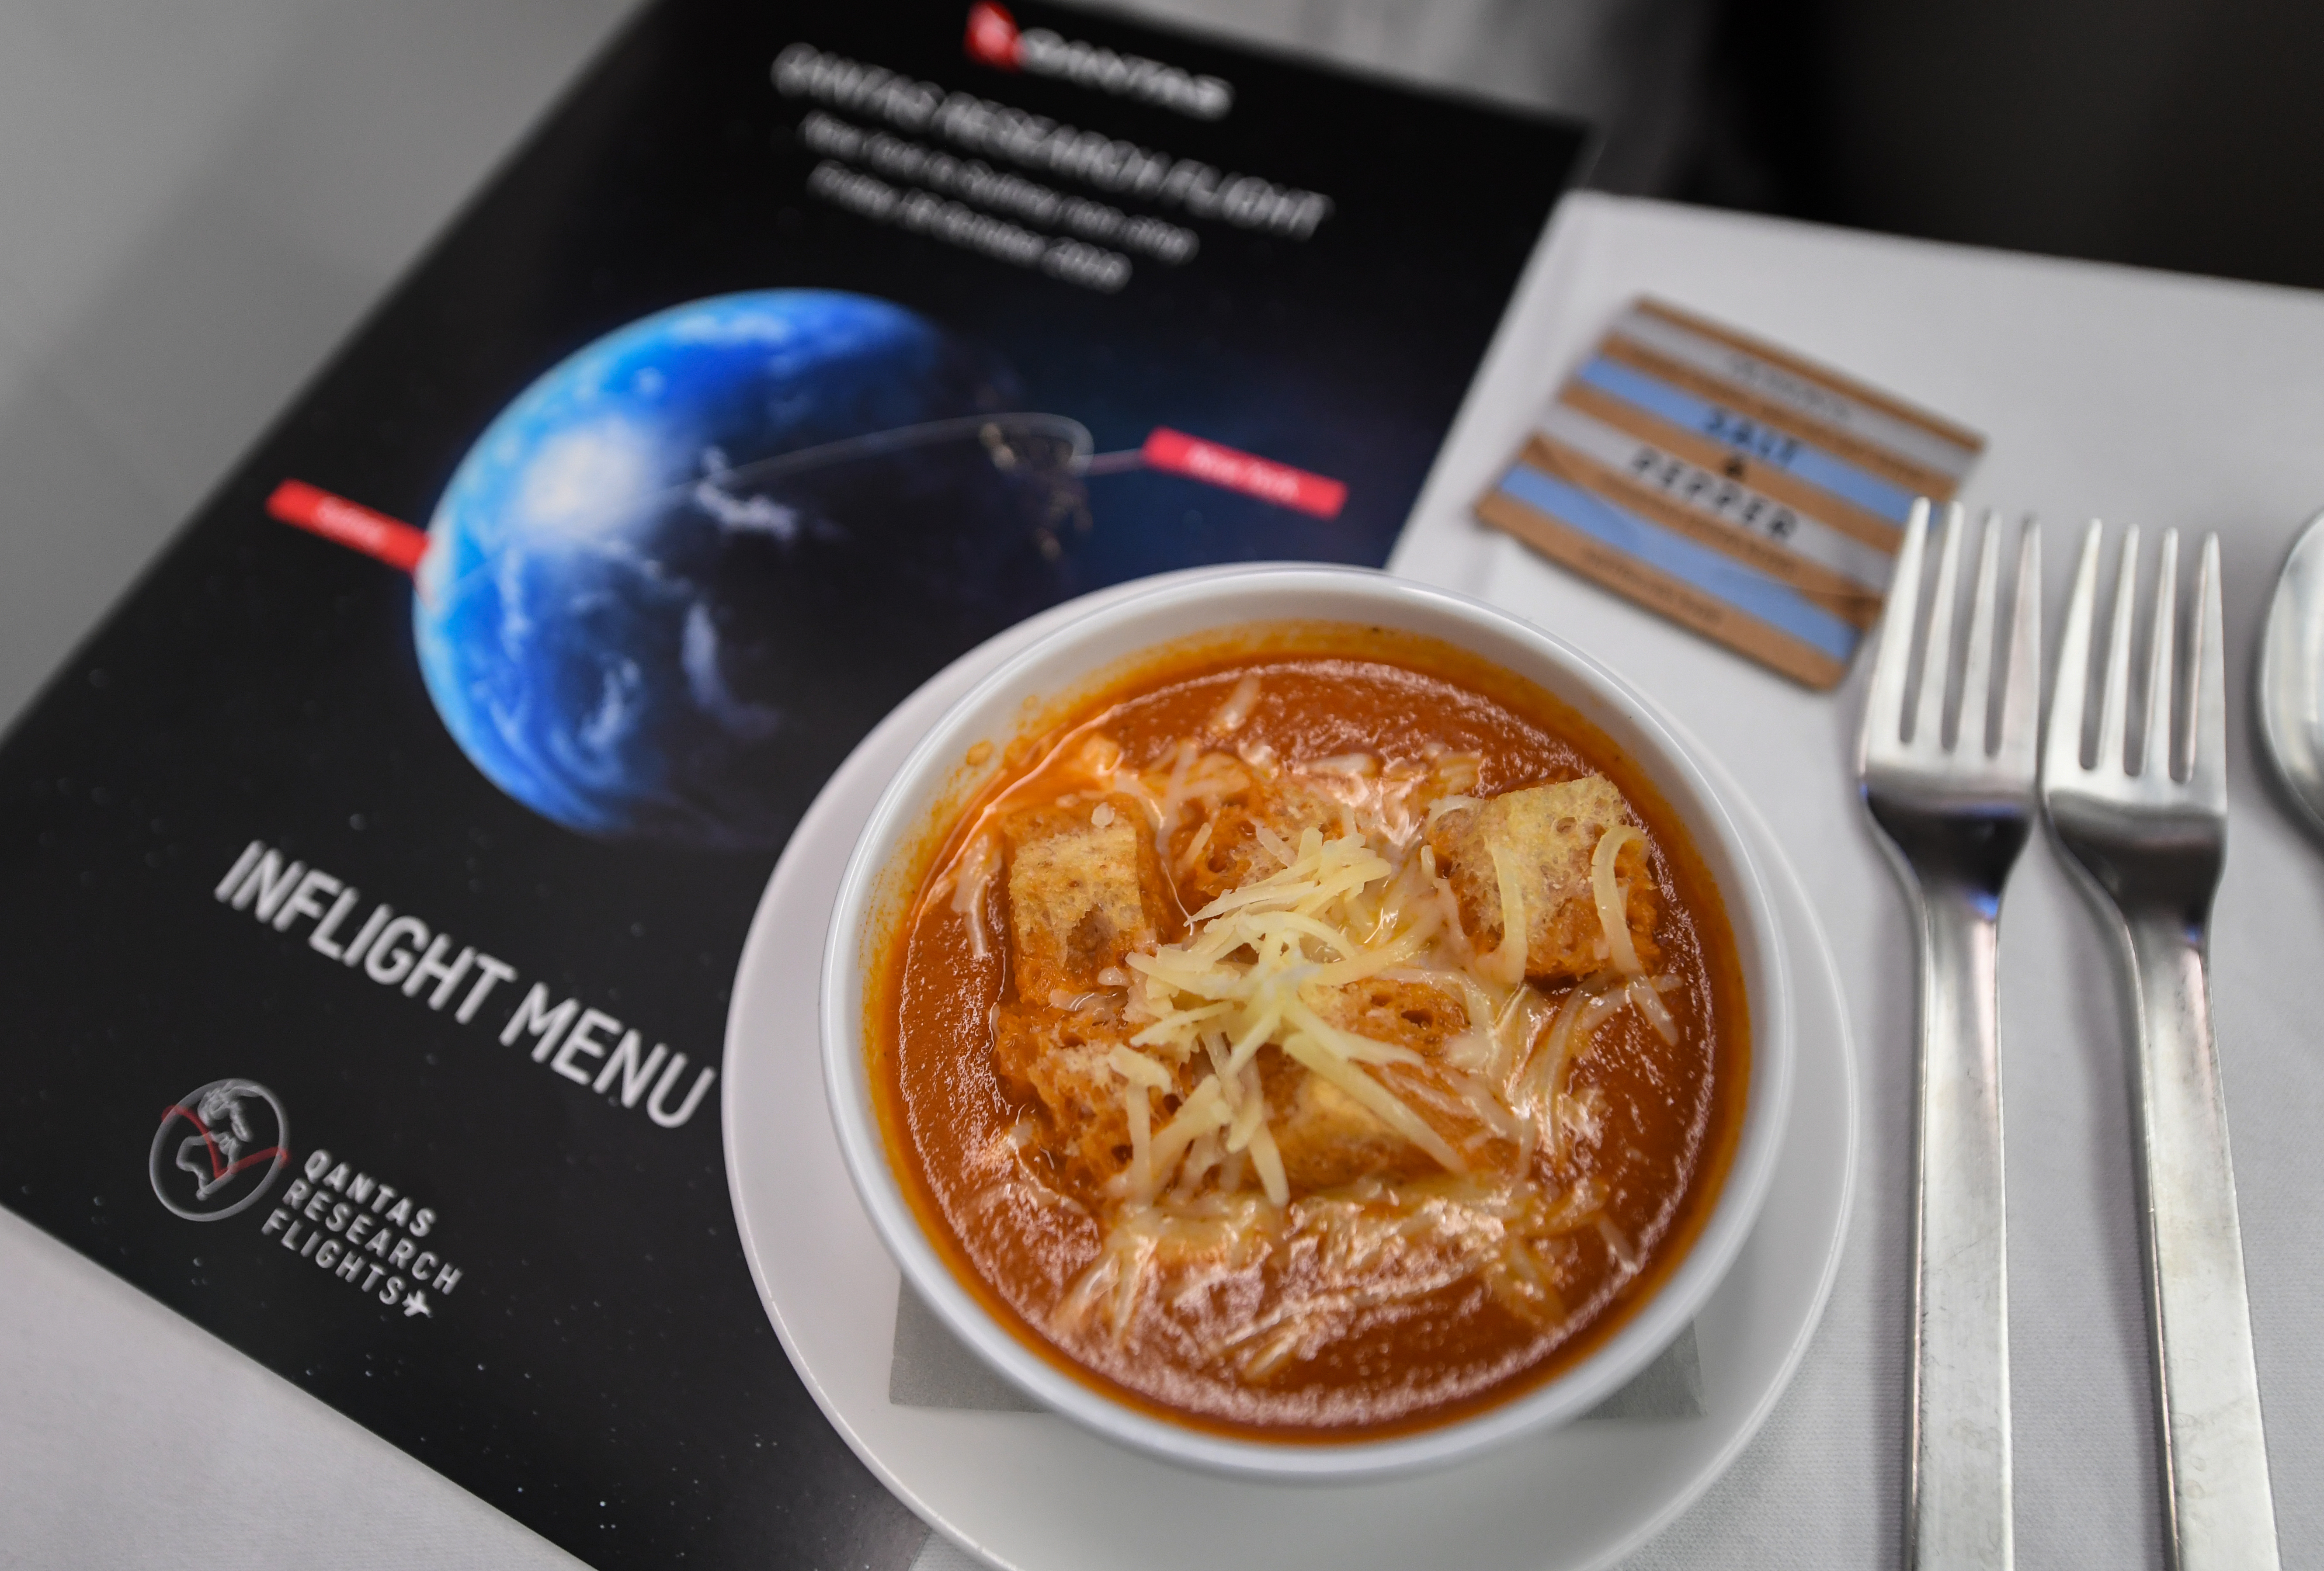 Food being served onboard QF7879 on Oct. 19, 2019 in Sydney, Australia.